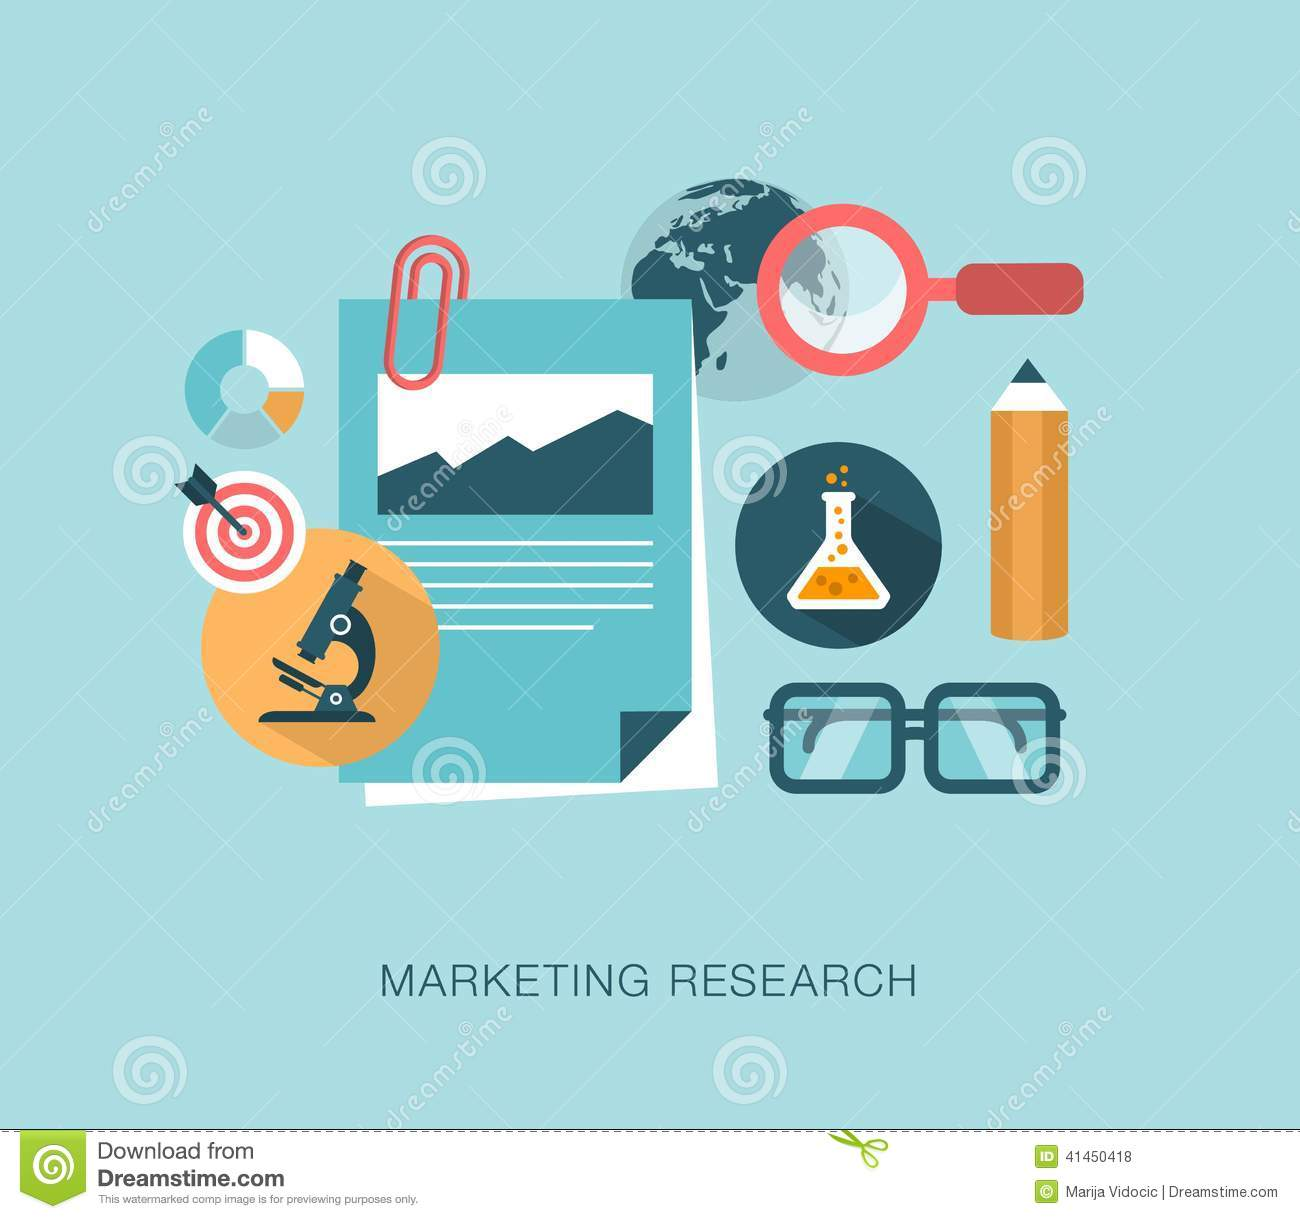 Marketing Research Concept Illustration Stock Vector Image  Marketing Research Concept Illustration Various Uses  Stock Illustration Marketing Research Concept Illustration Various Uses Image